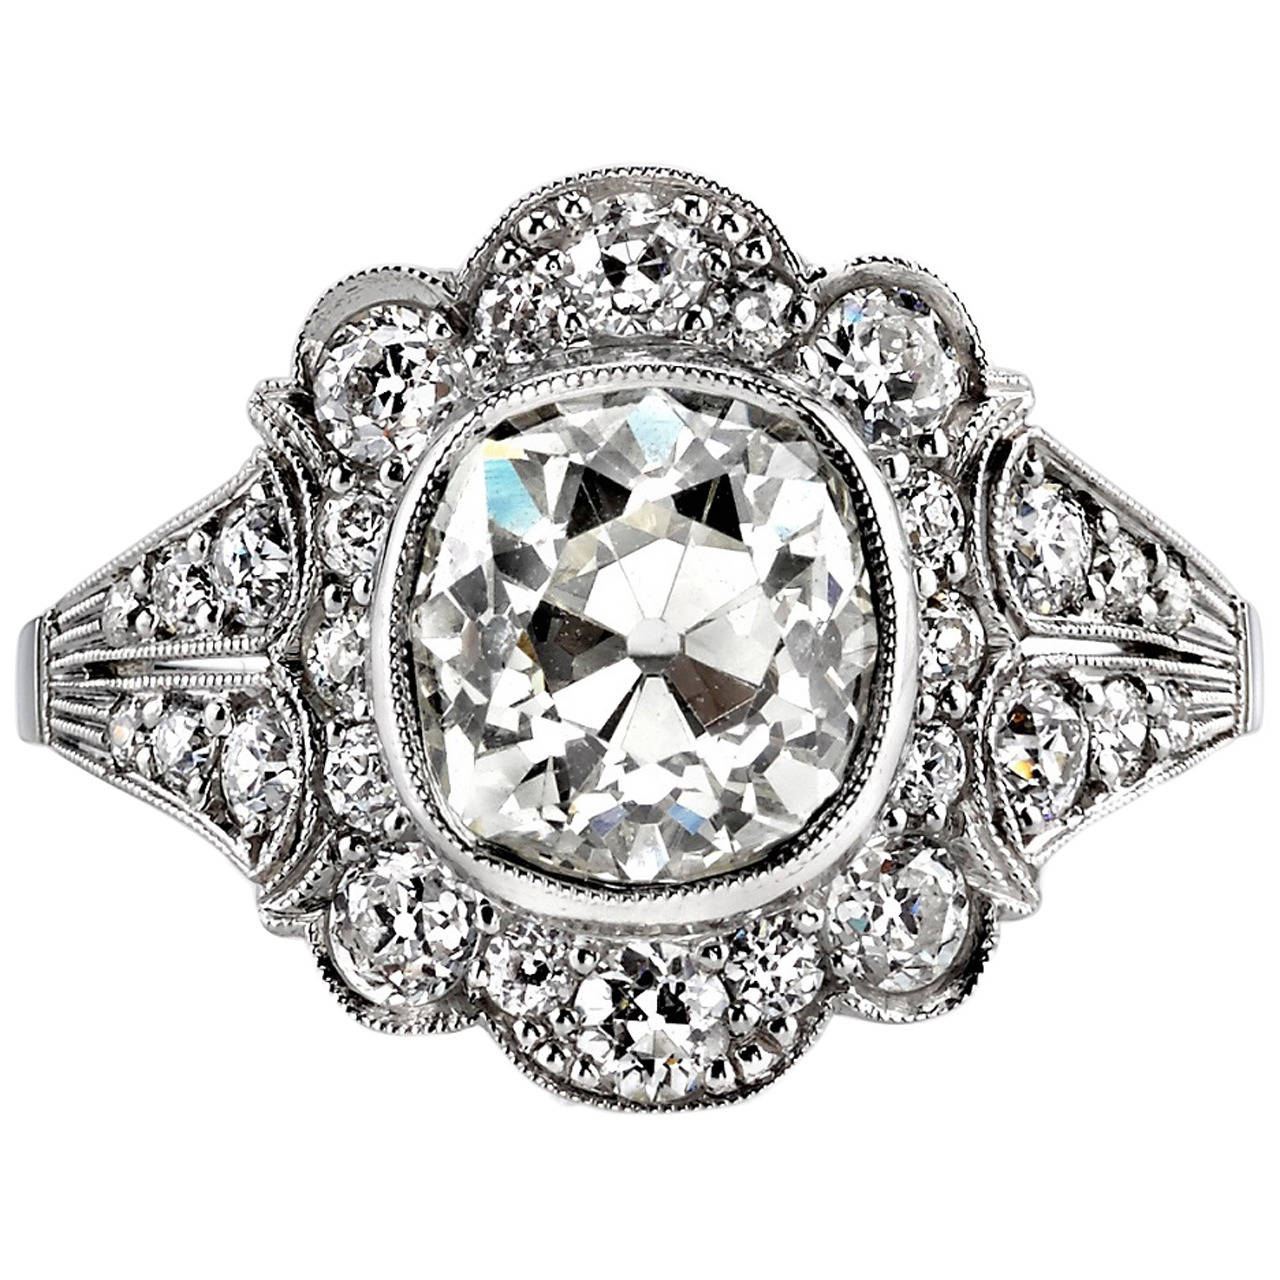 Two Platinum: 2.40 Carat Cushion Cut Diamond Platinum Engagement Ring At